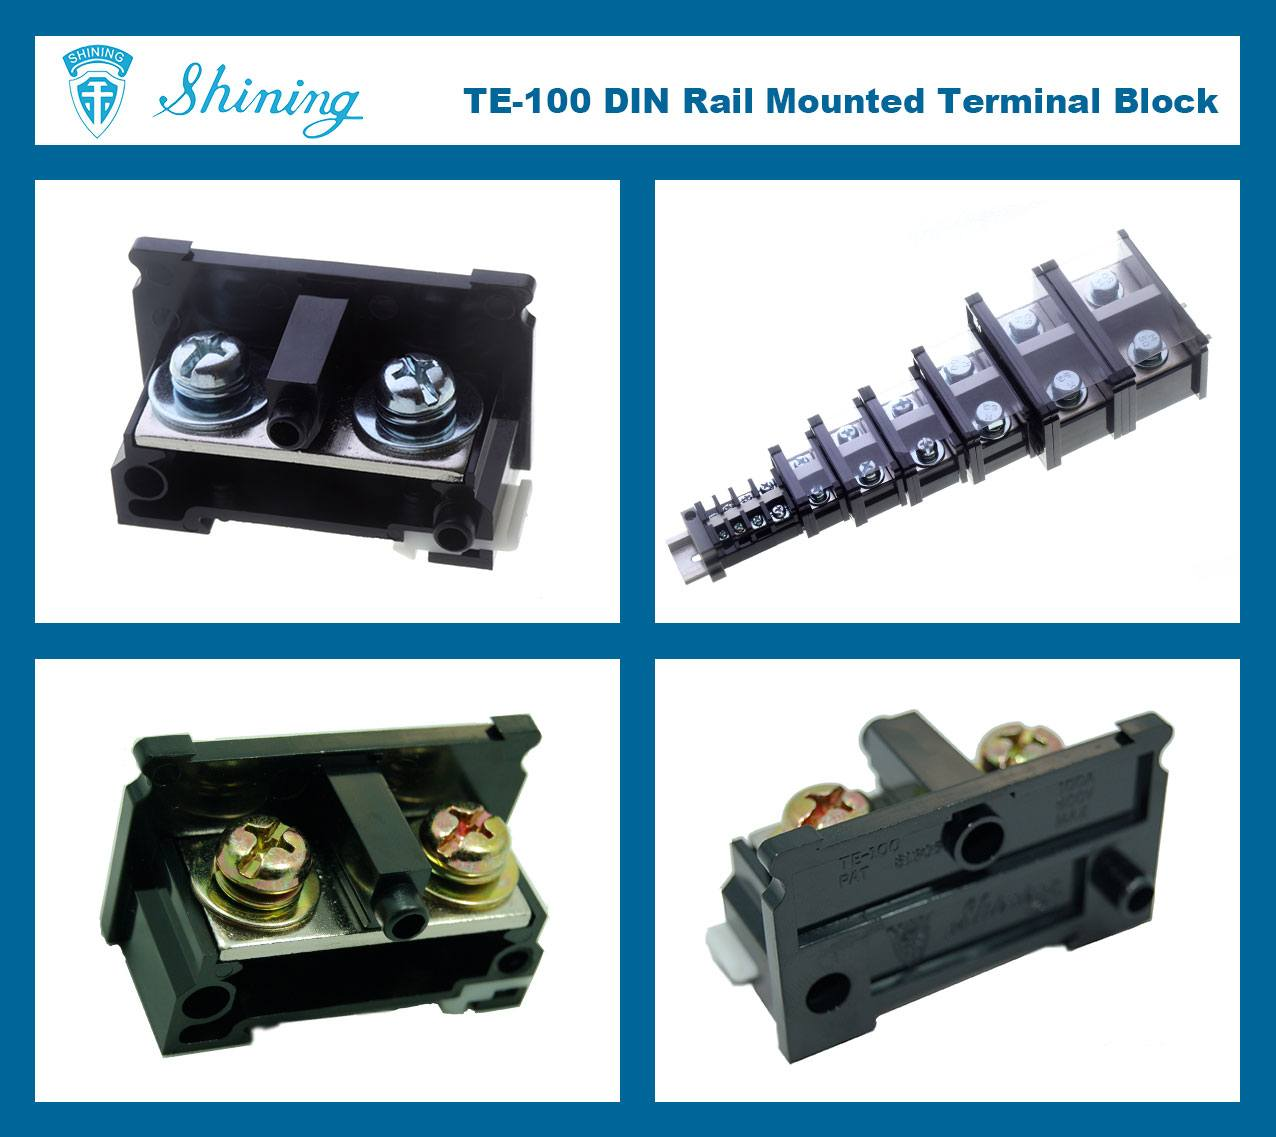 SHINING-TE-100 35mm Din Rail Mounted Assembly Type 600V 100A Terminal Strip